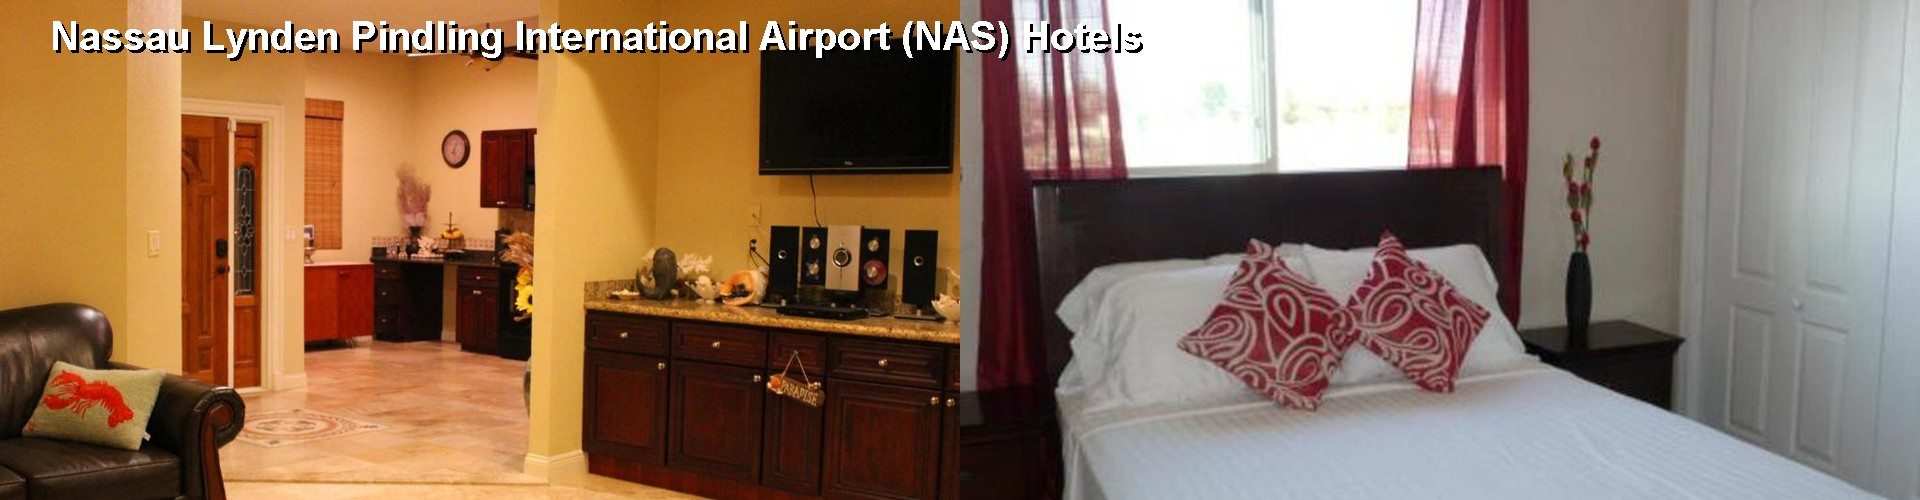 5 Best Hotels near Nassau Lynden Pindling International Airport (NAS)